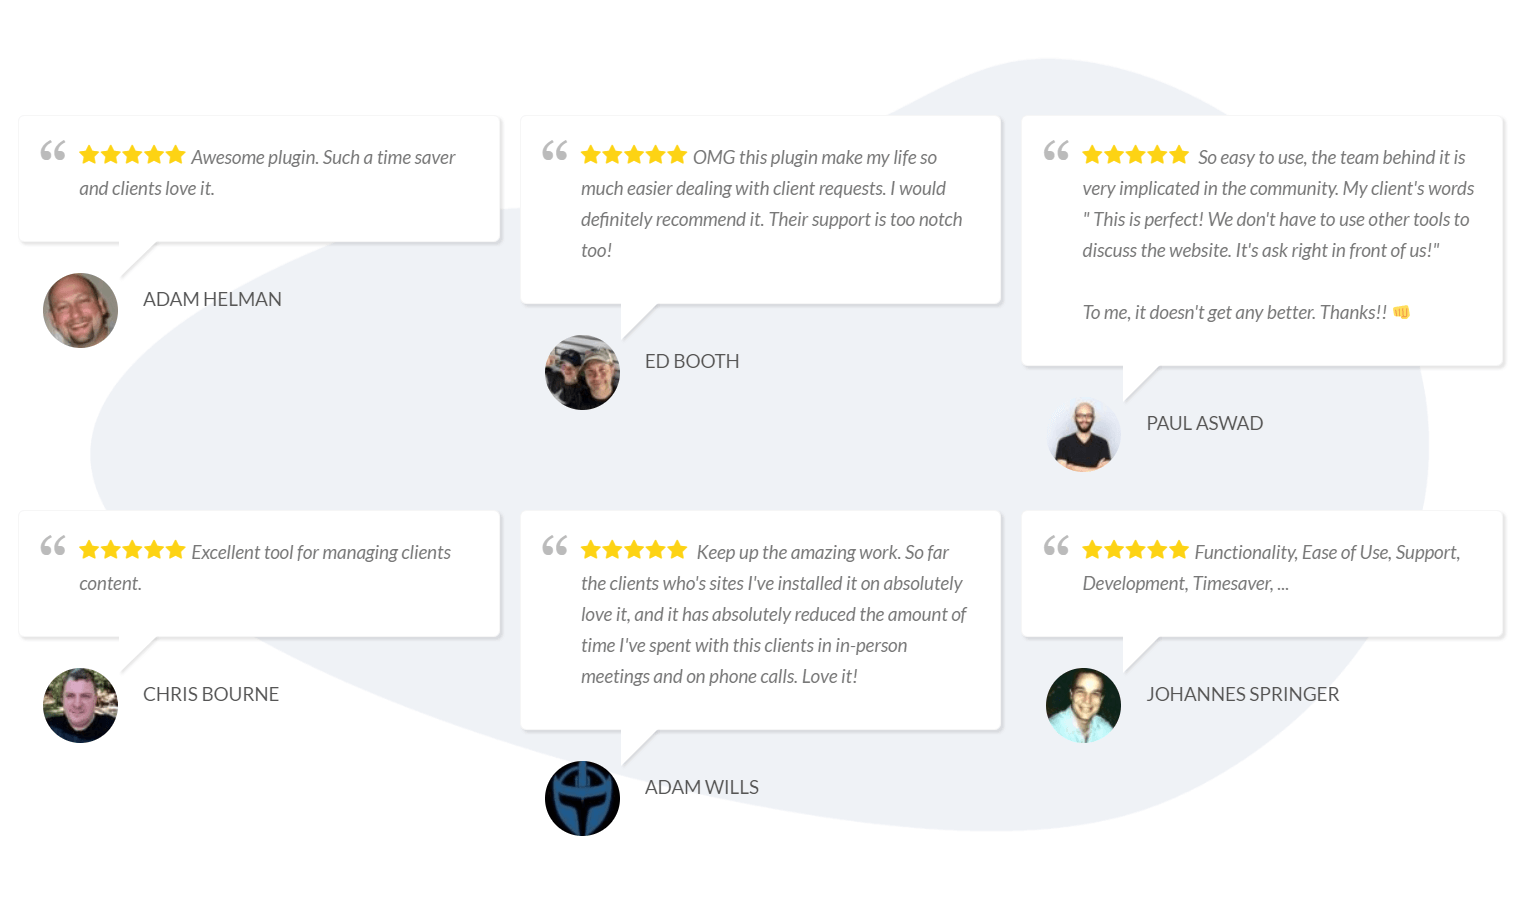 reviews-wpfeedback_0002_screenshot-wpfeedback.co-2019.07.14-16_24_04